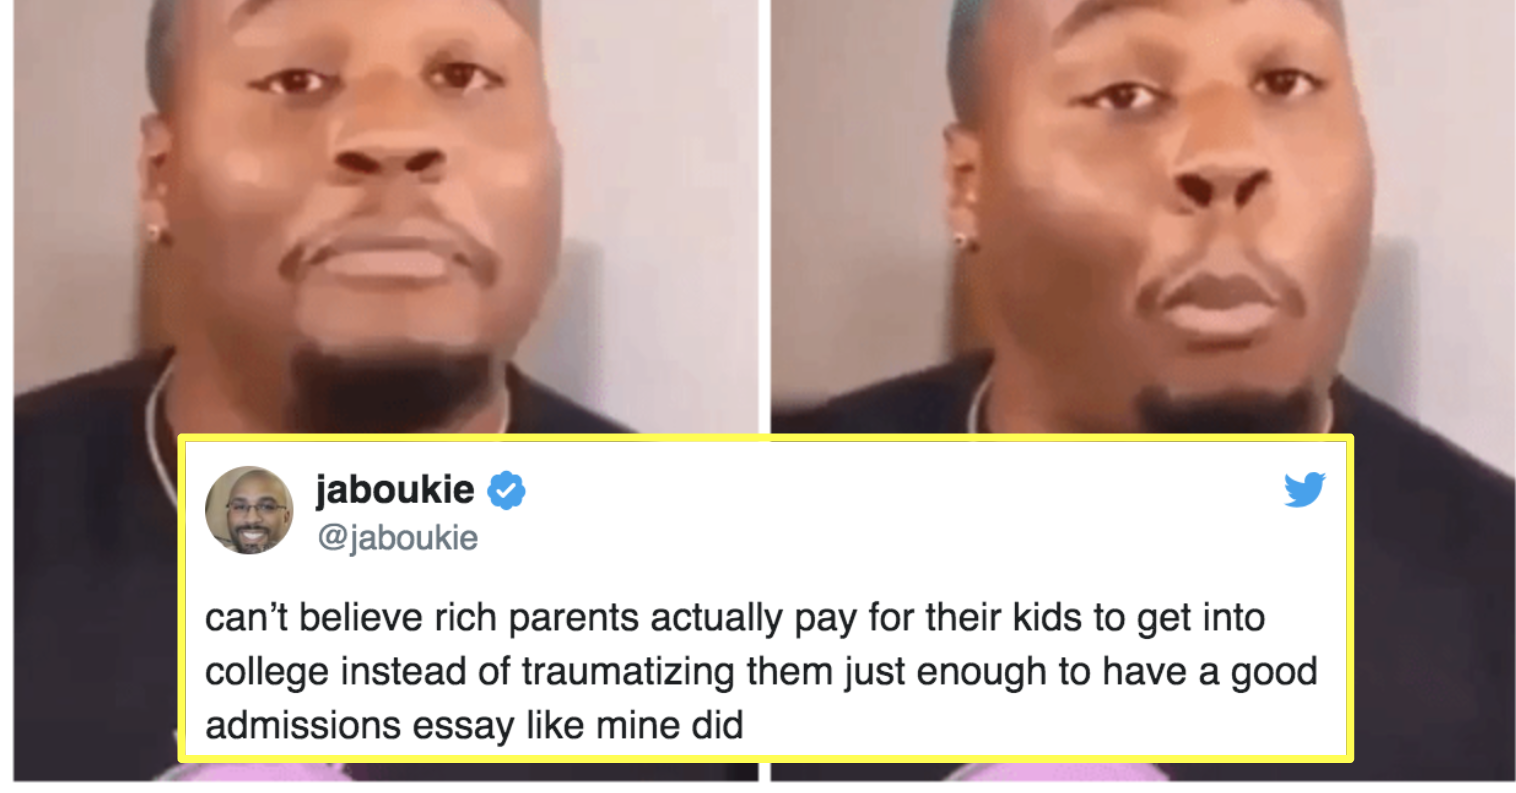 """14 Funny Tweets About This Whole College Admissions Scam That'll Make You Say """"BIG FACTS!"""""""